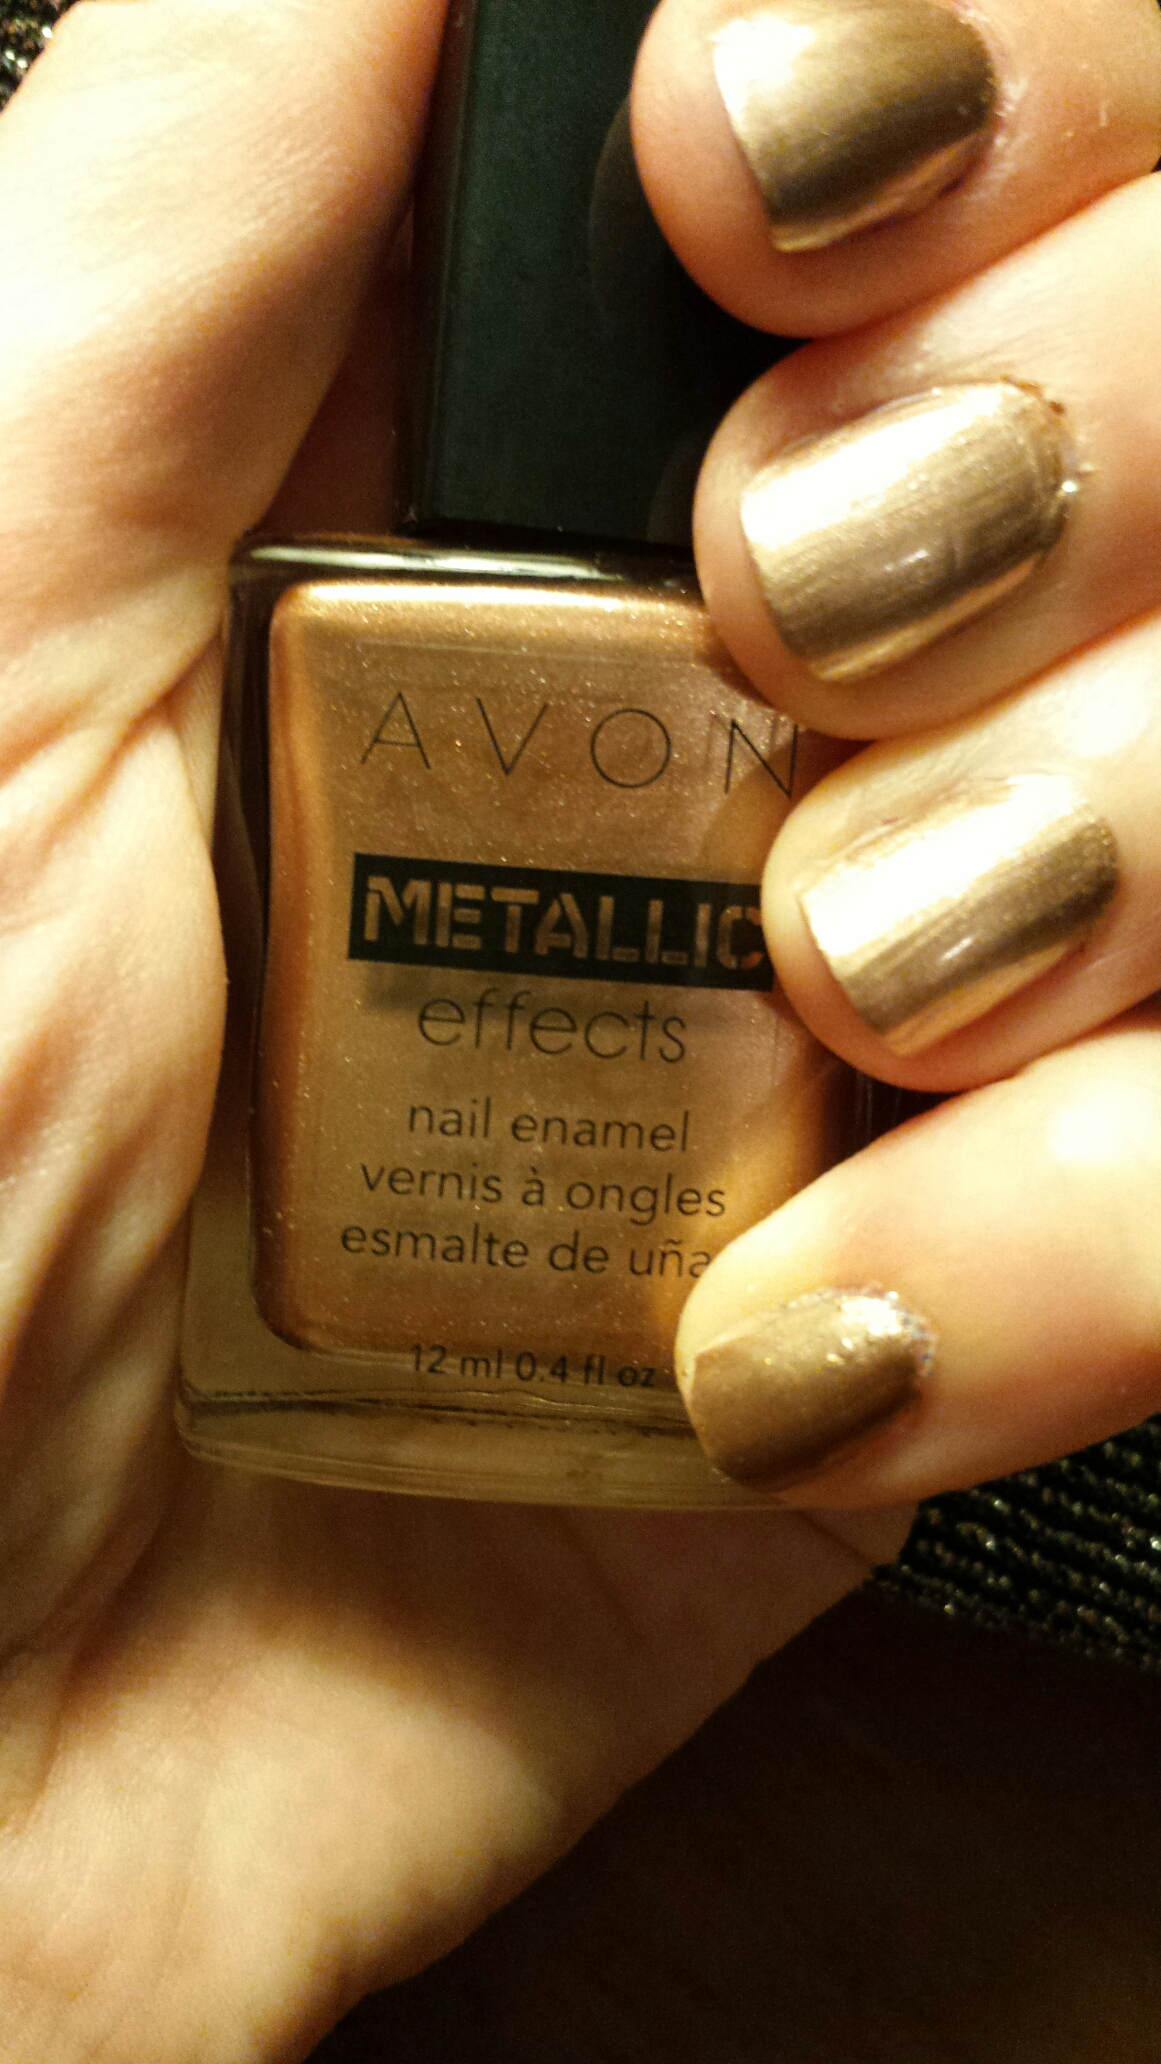 Mani time! Avon Metallic effects. Sneak Peek!